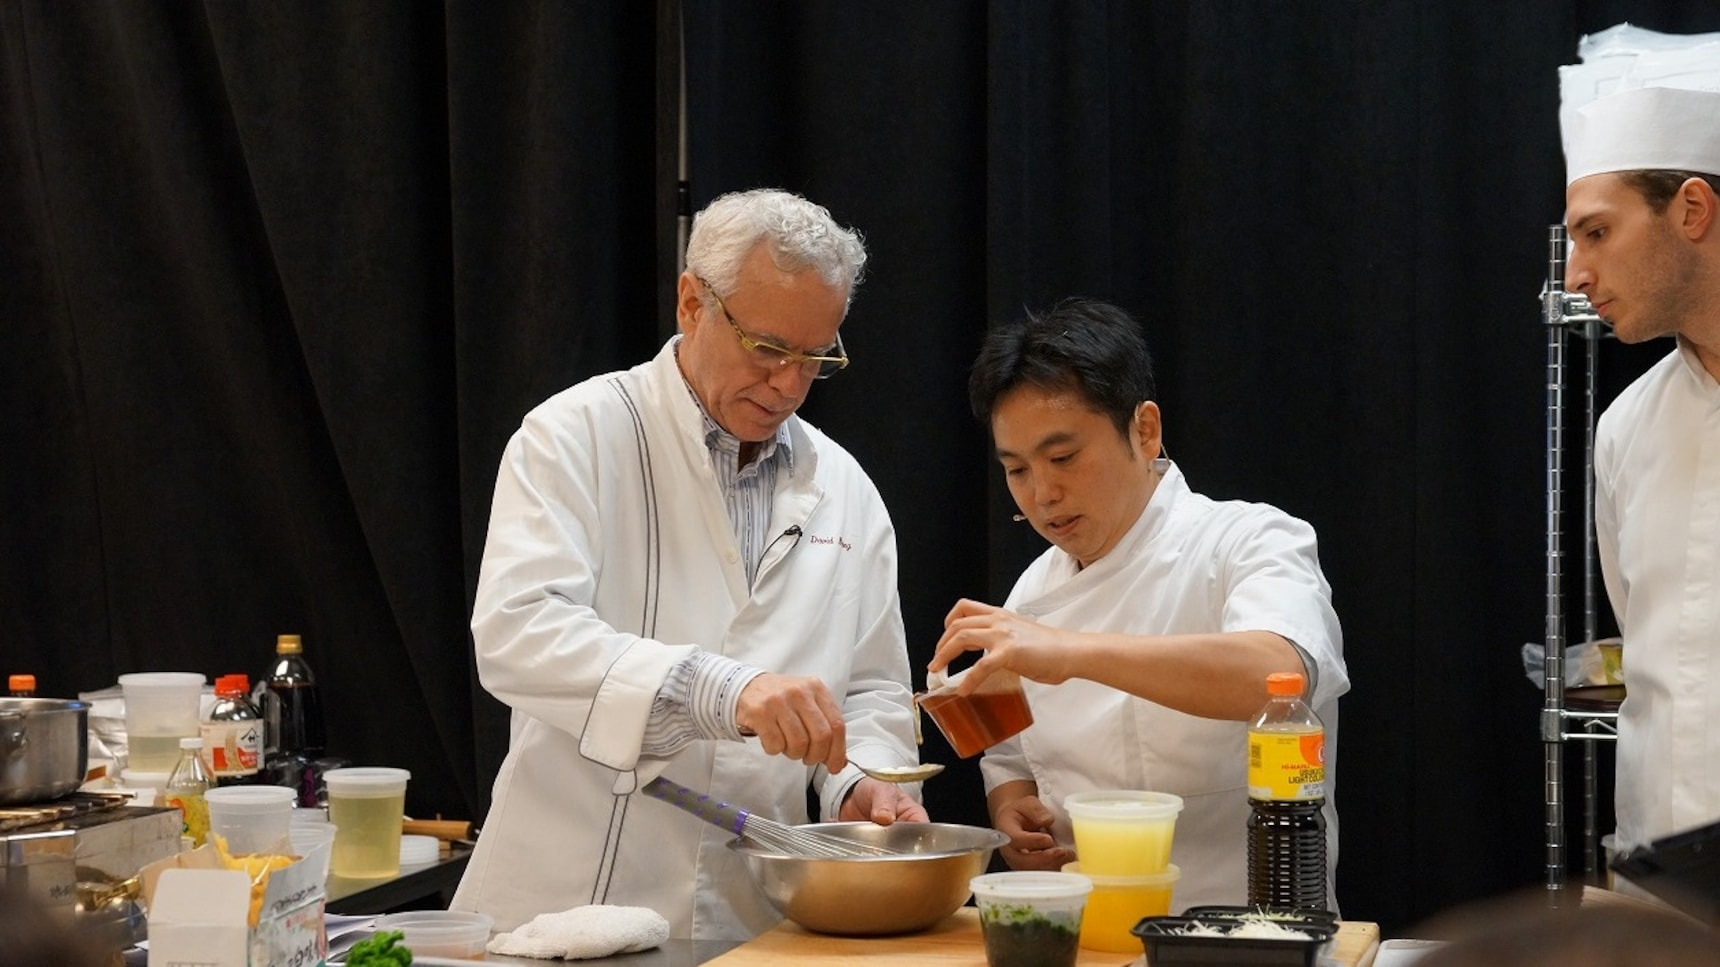 Michelin-Starred Chef on Ichiju-Sansai